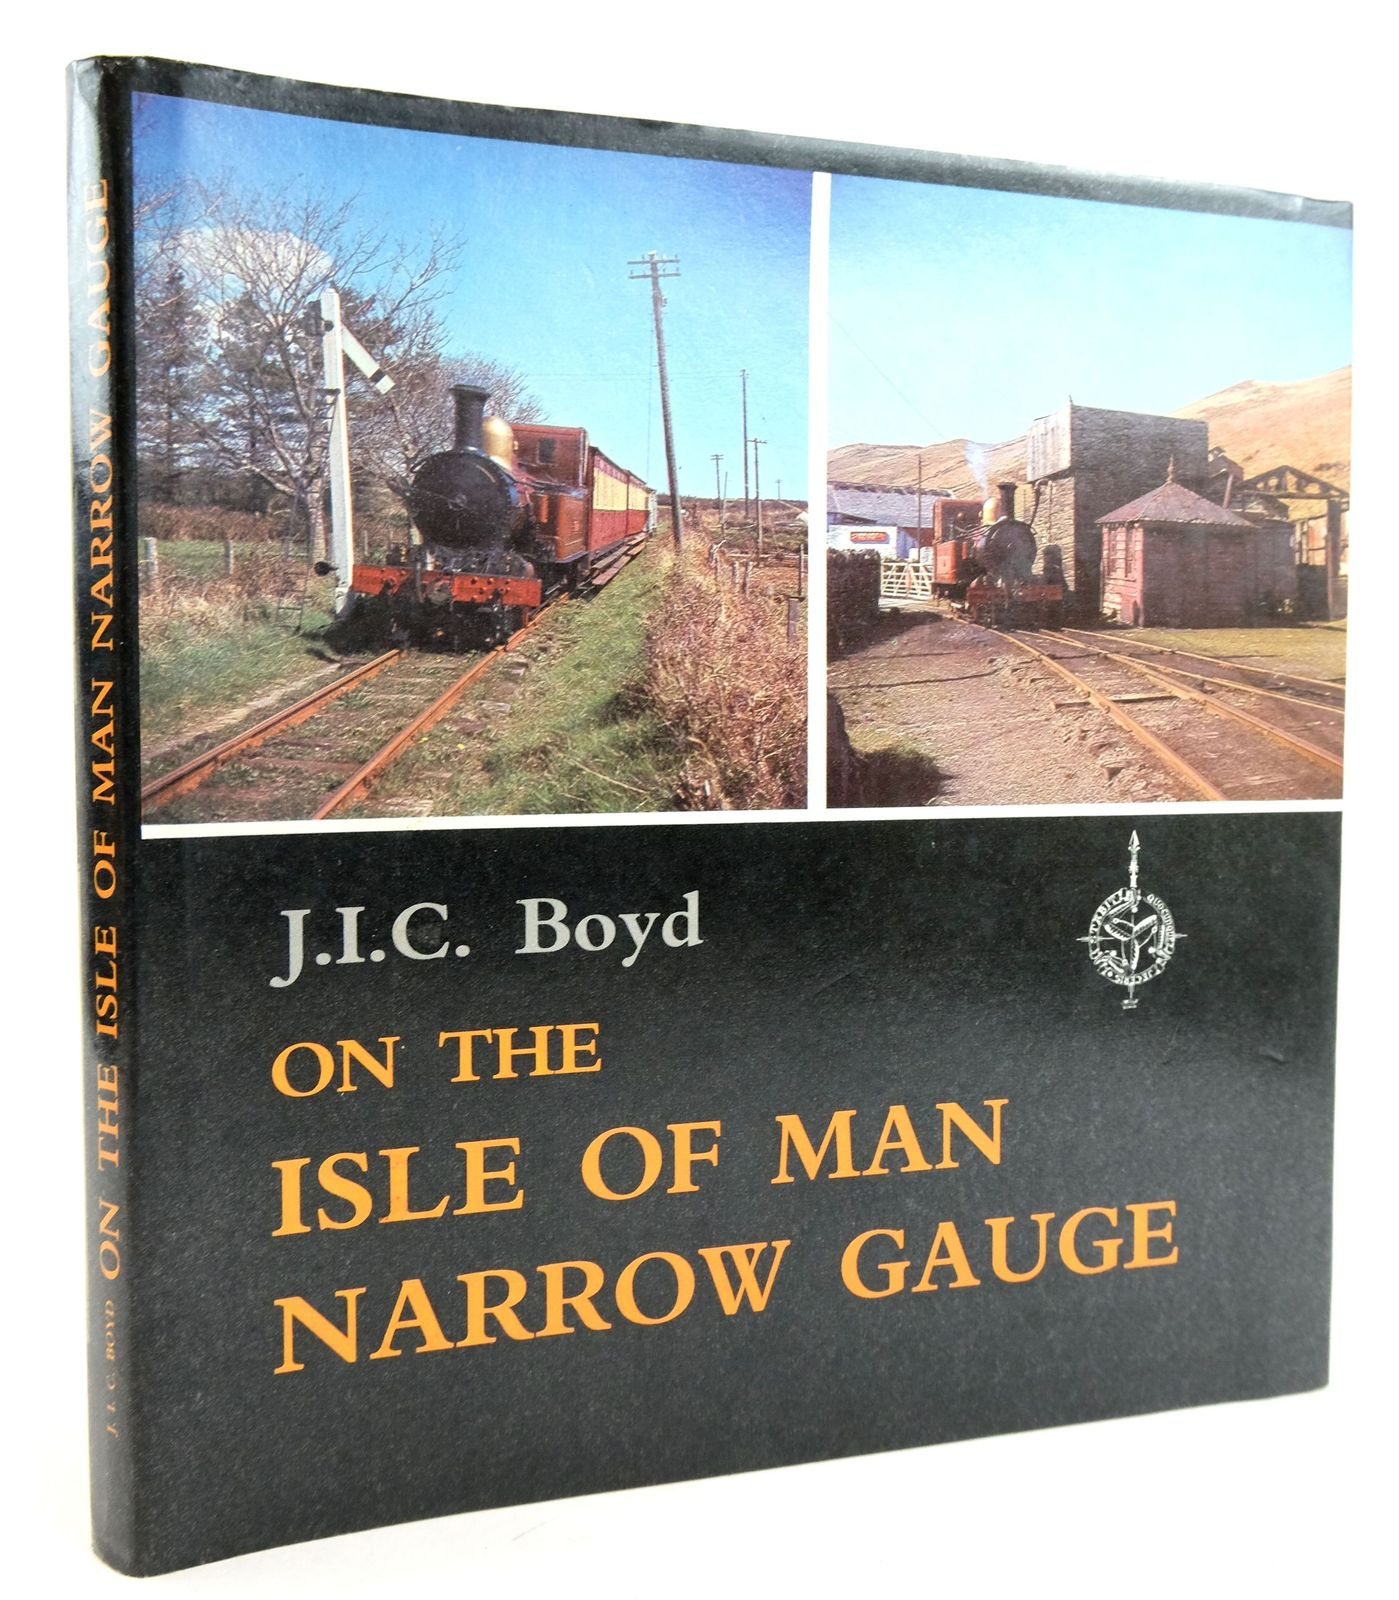 Photo of ON THE ISLE OF MAN NARROW GAUGE written by Boyd, James I.C. published by D. Bradford Barton (STOCK CODE: 1819831)  for sale by Stella & Rose's Books